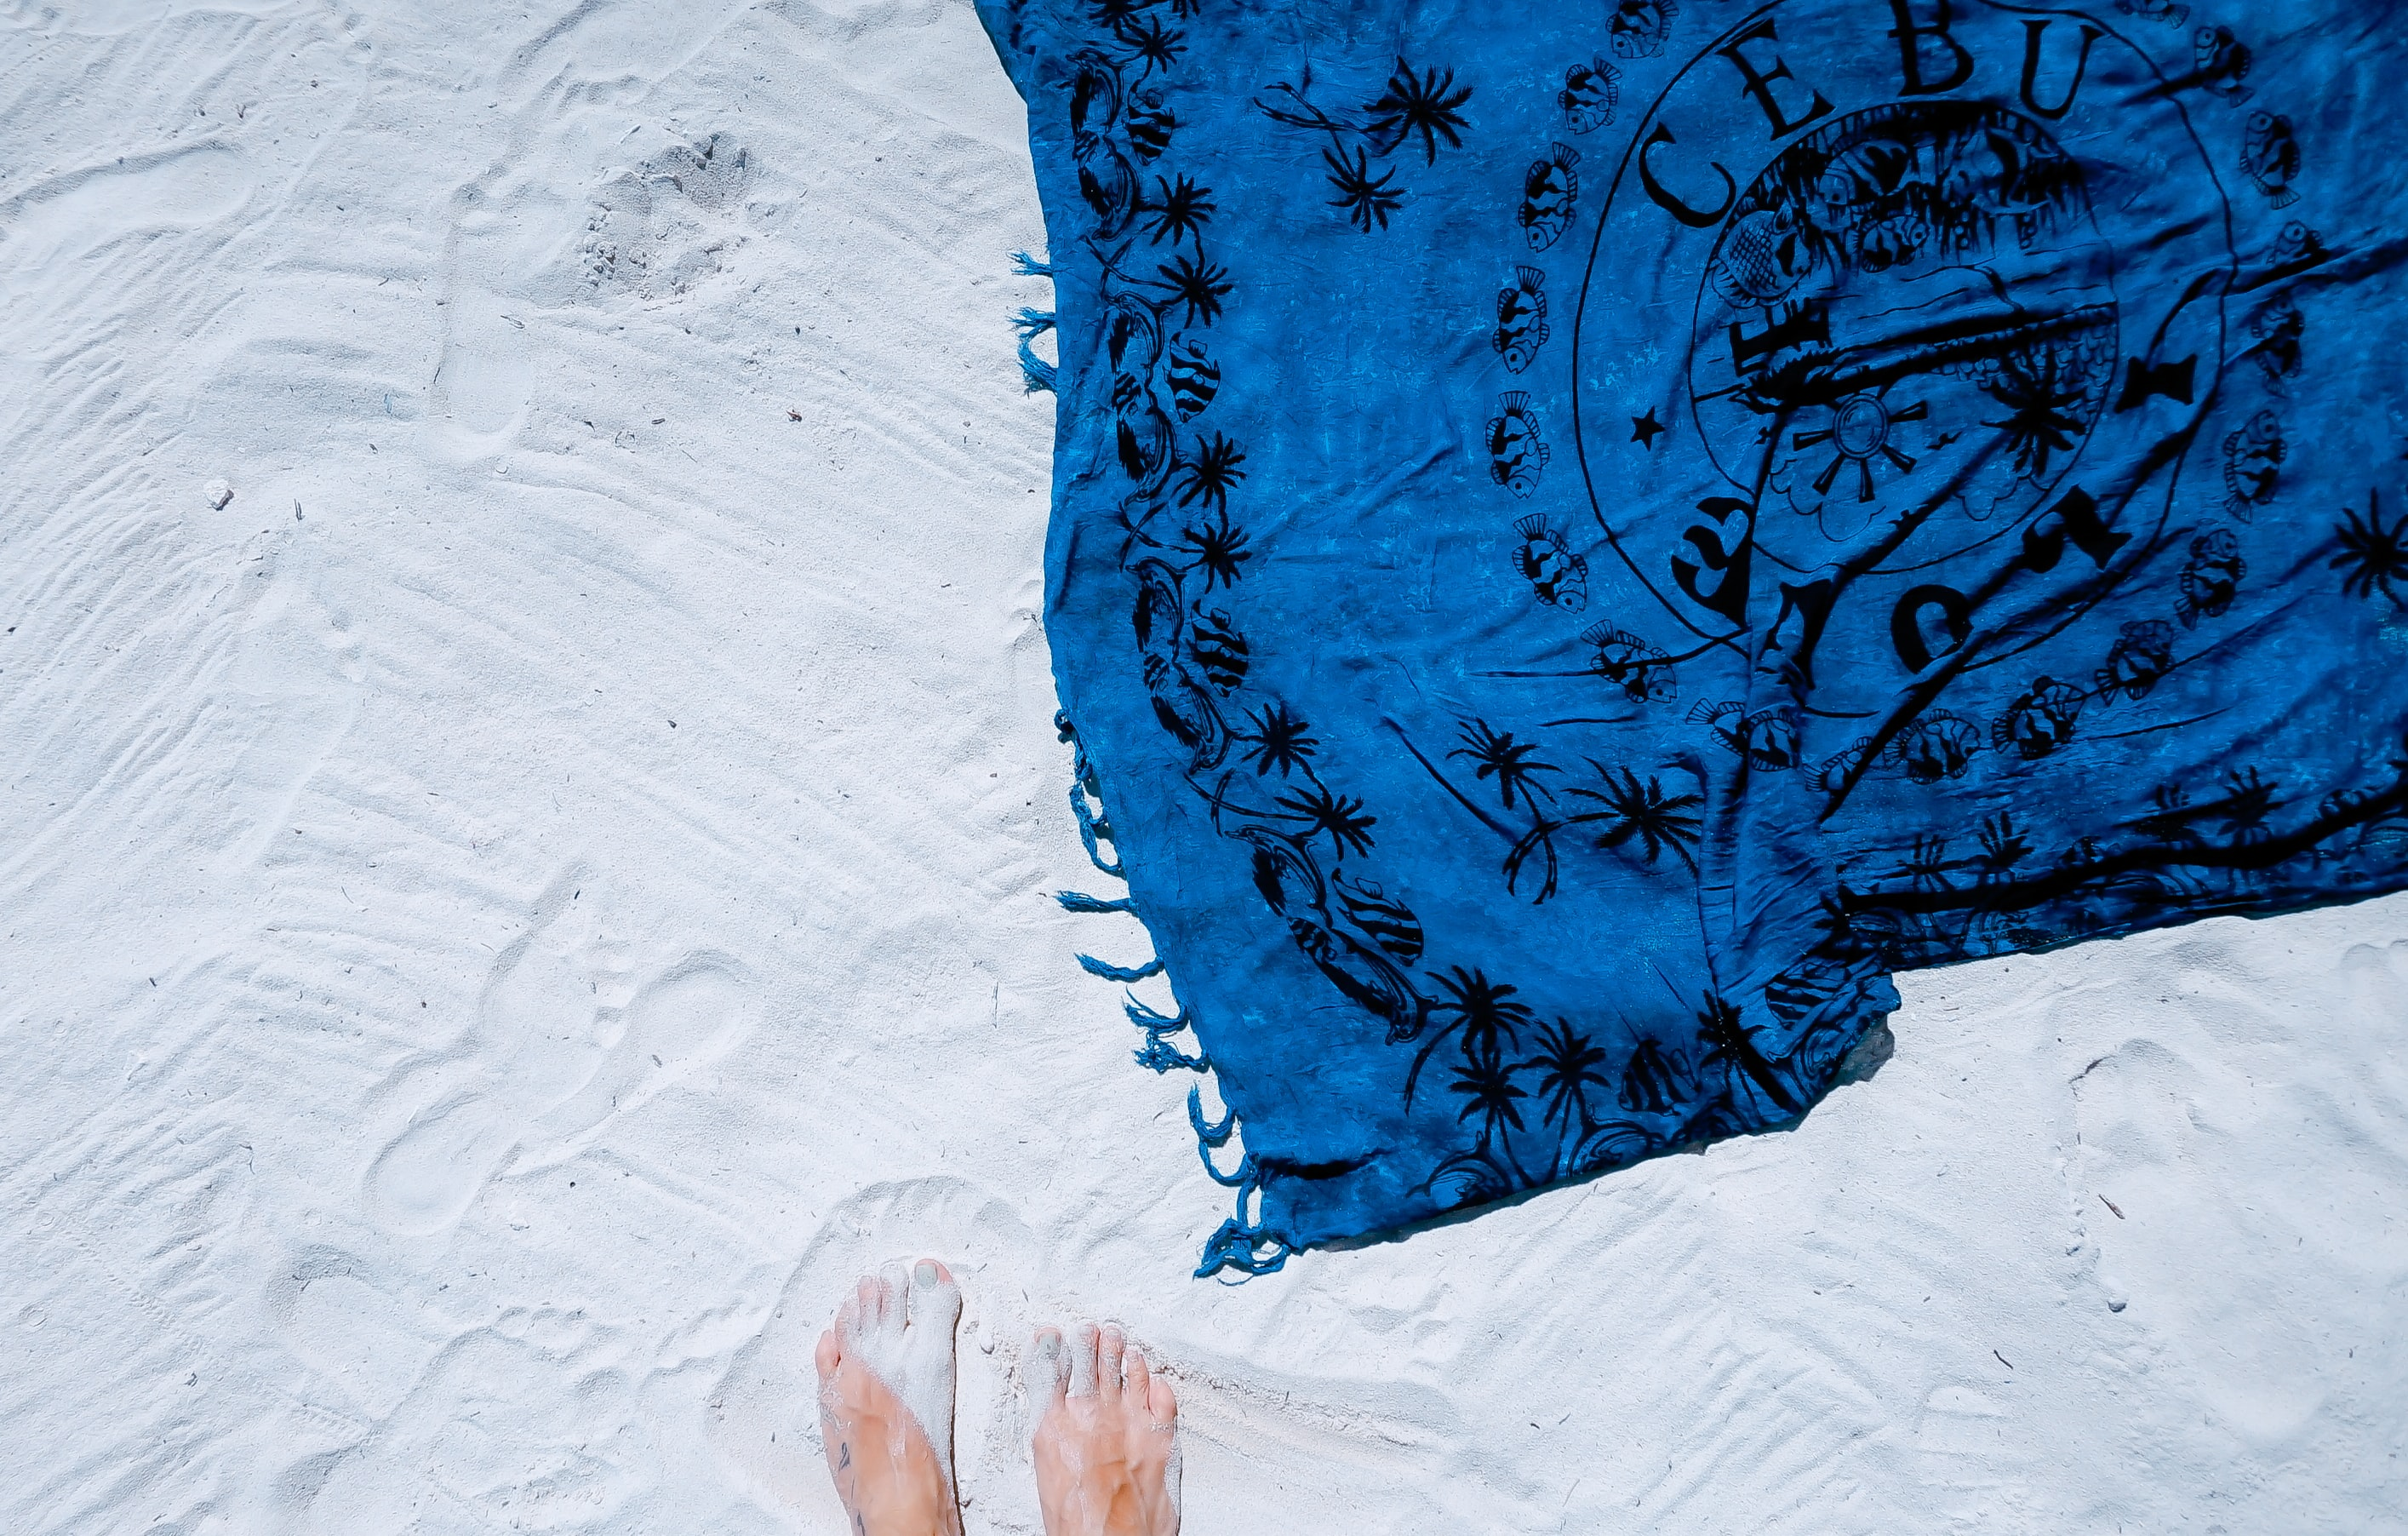 An overhead shot of a person's feet in the white sand next to a blue towel